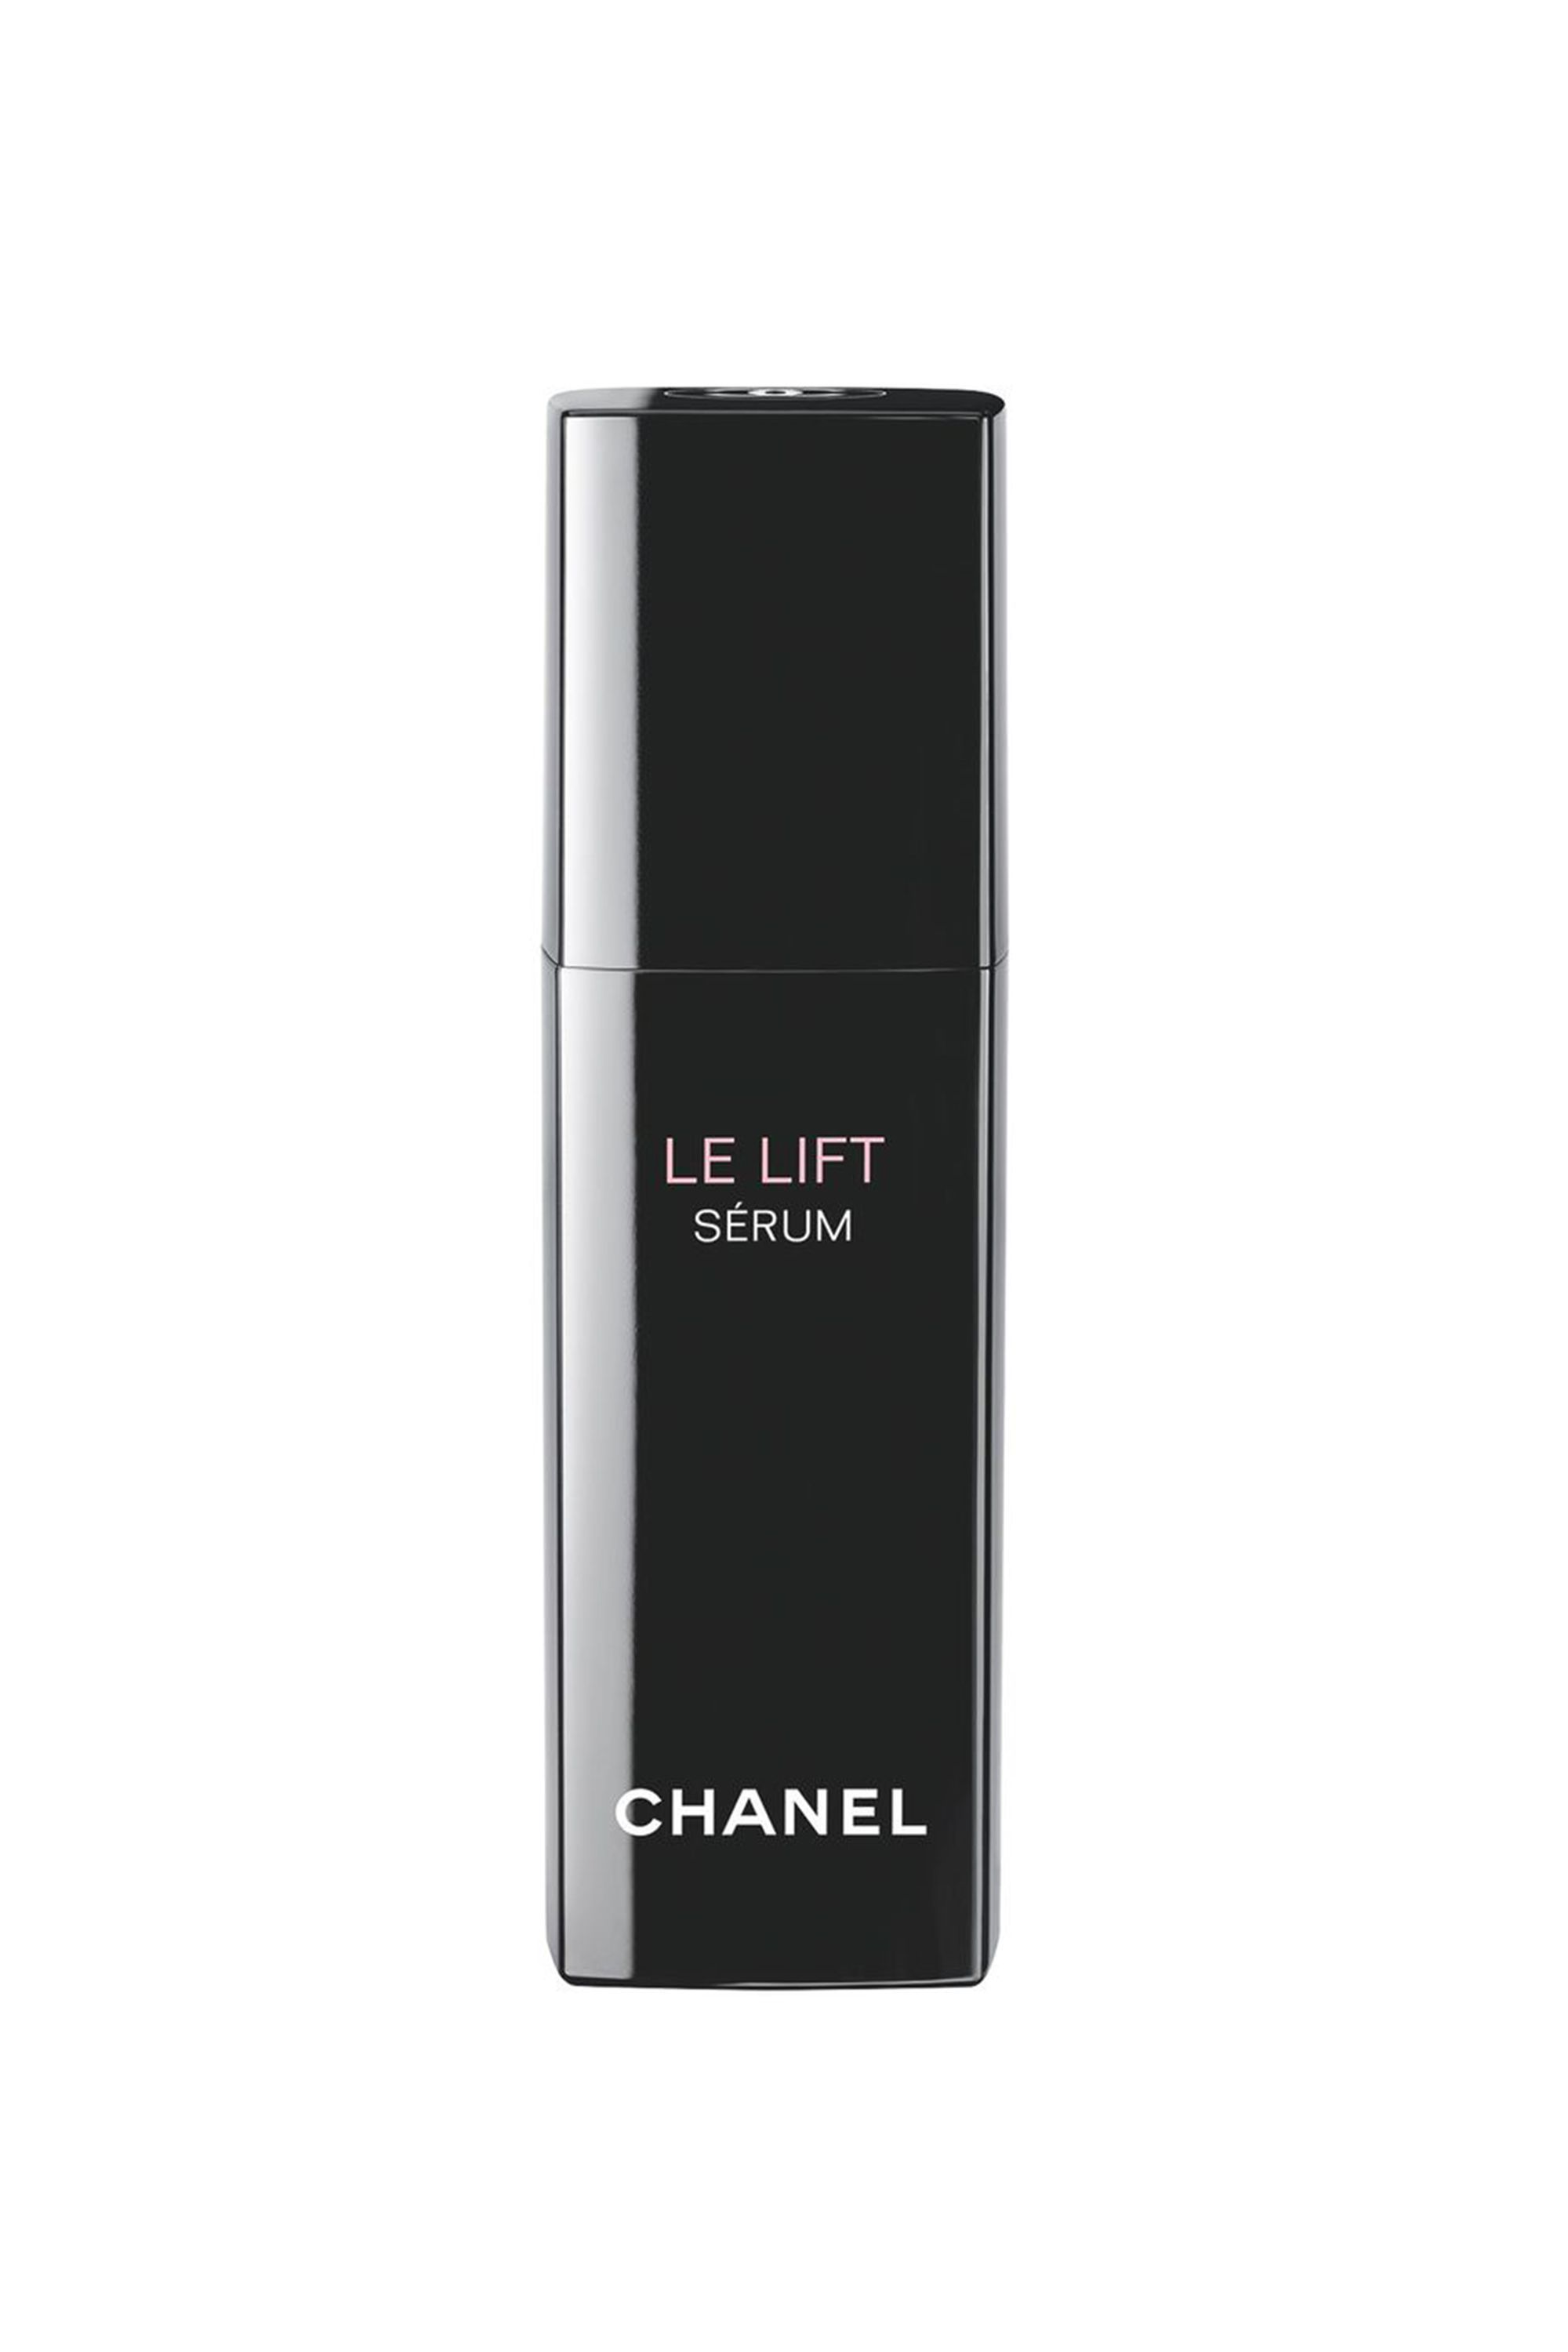 The Future of Serum Le Lift Serum Firming Anti-Wrinkle Serum Chanel nordstrom.com $175.00 SHOP NOW For instant gratification and long-term results, this featherweight serum packs a punch with futuristic sounding 3.5-DA technology and earthbound resveratrol. Seemingly whip-smart ingredients are able to seek out and address specific aging concerns at a molecular level.